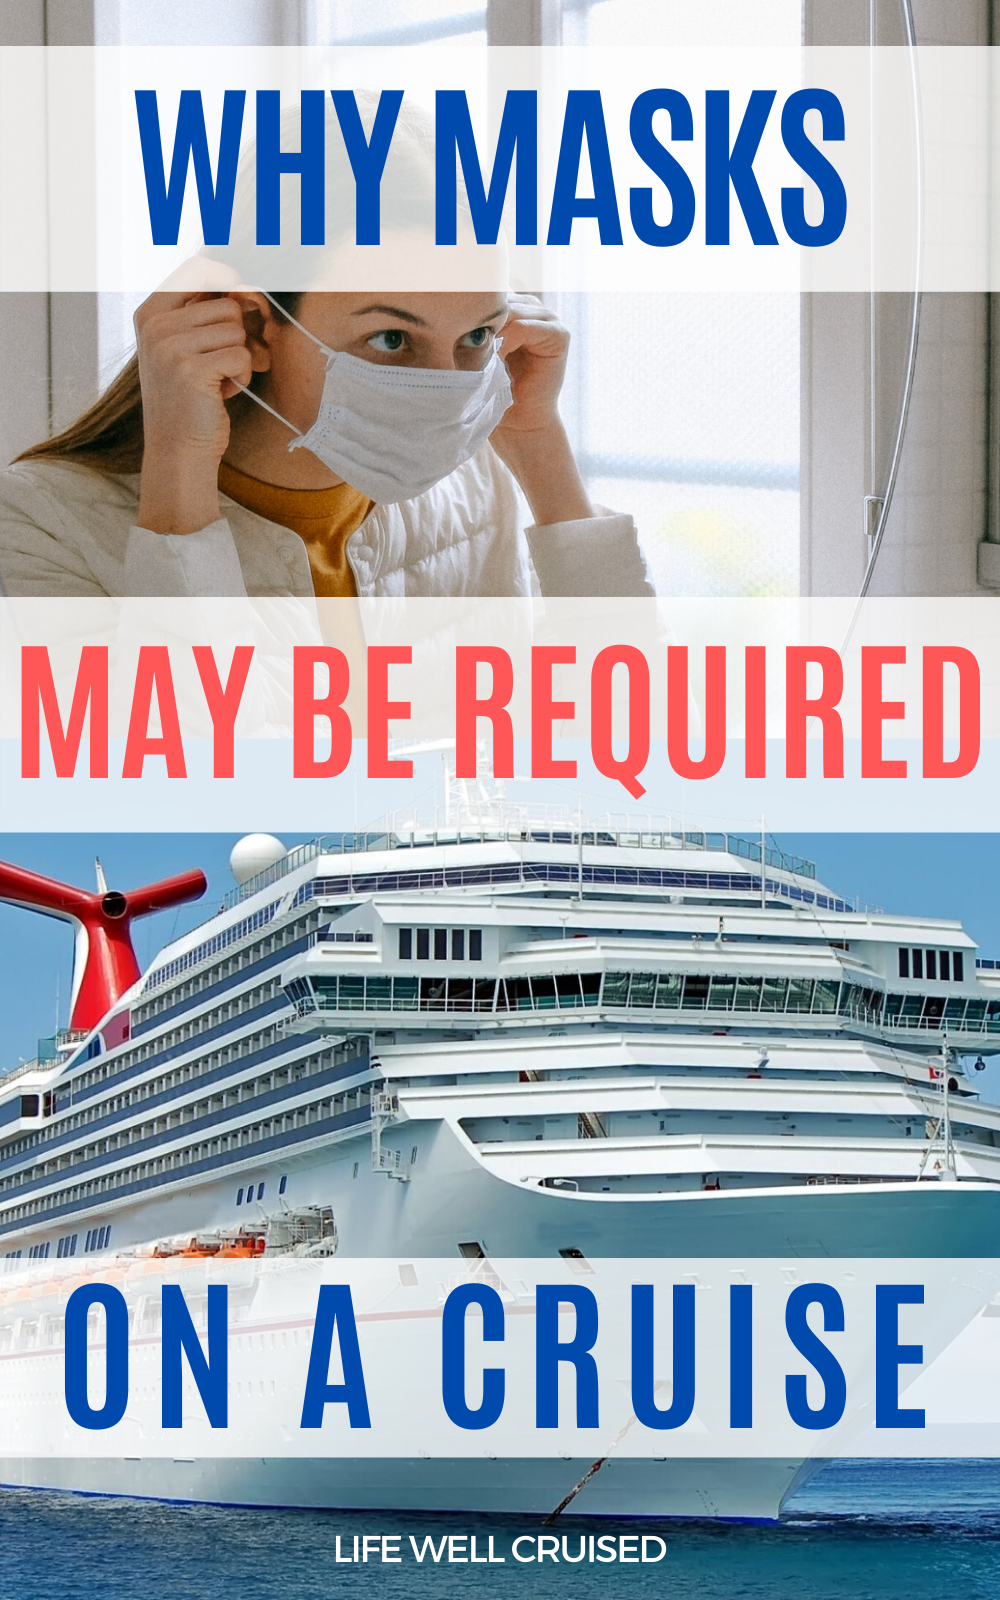 Carnival will not resume cruises until at least October in